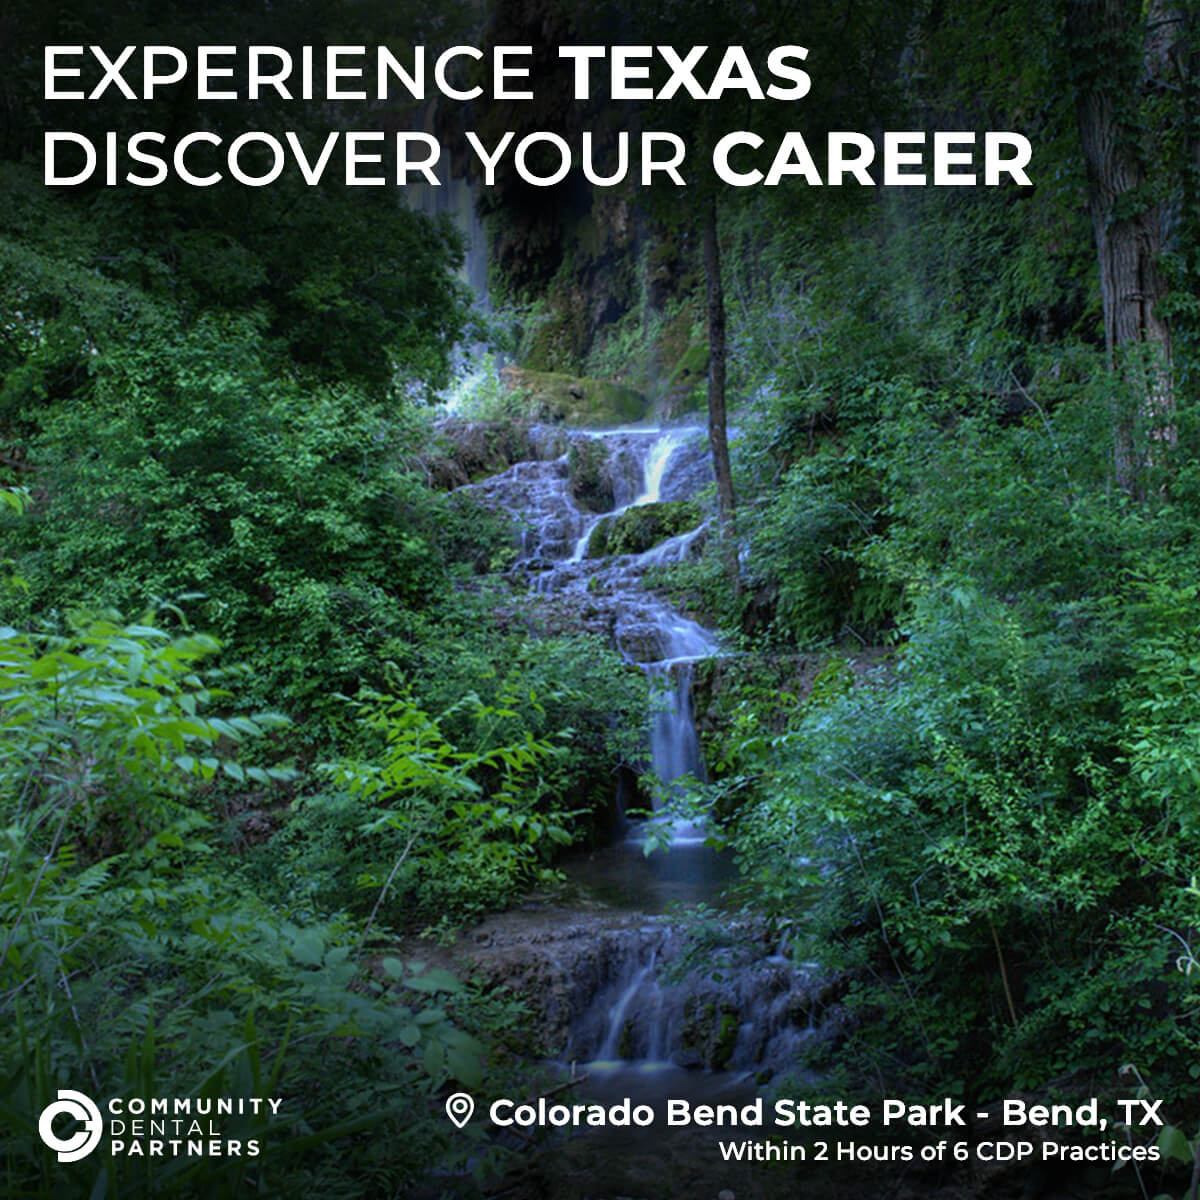 A photo of Colorado Bend State Park in Bend, TX, just one of the amazing parks you can visit in Texas. This park is within 2 hours of 6 CDP Practices!